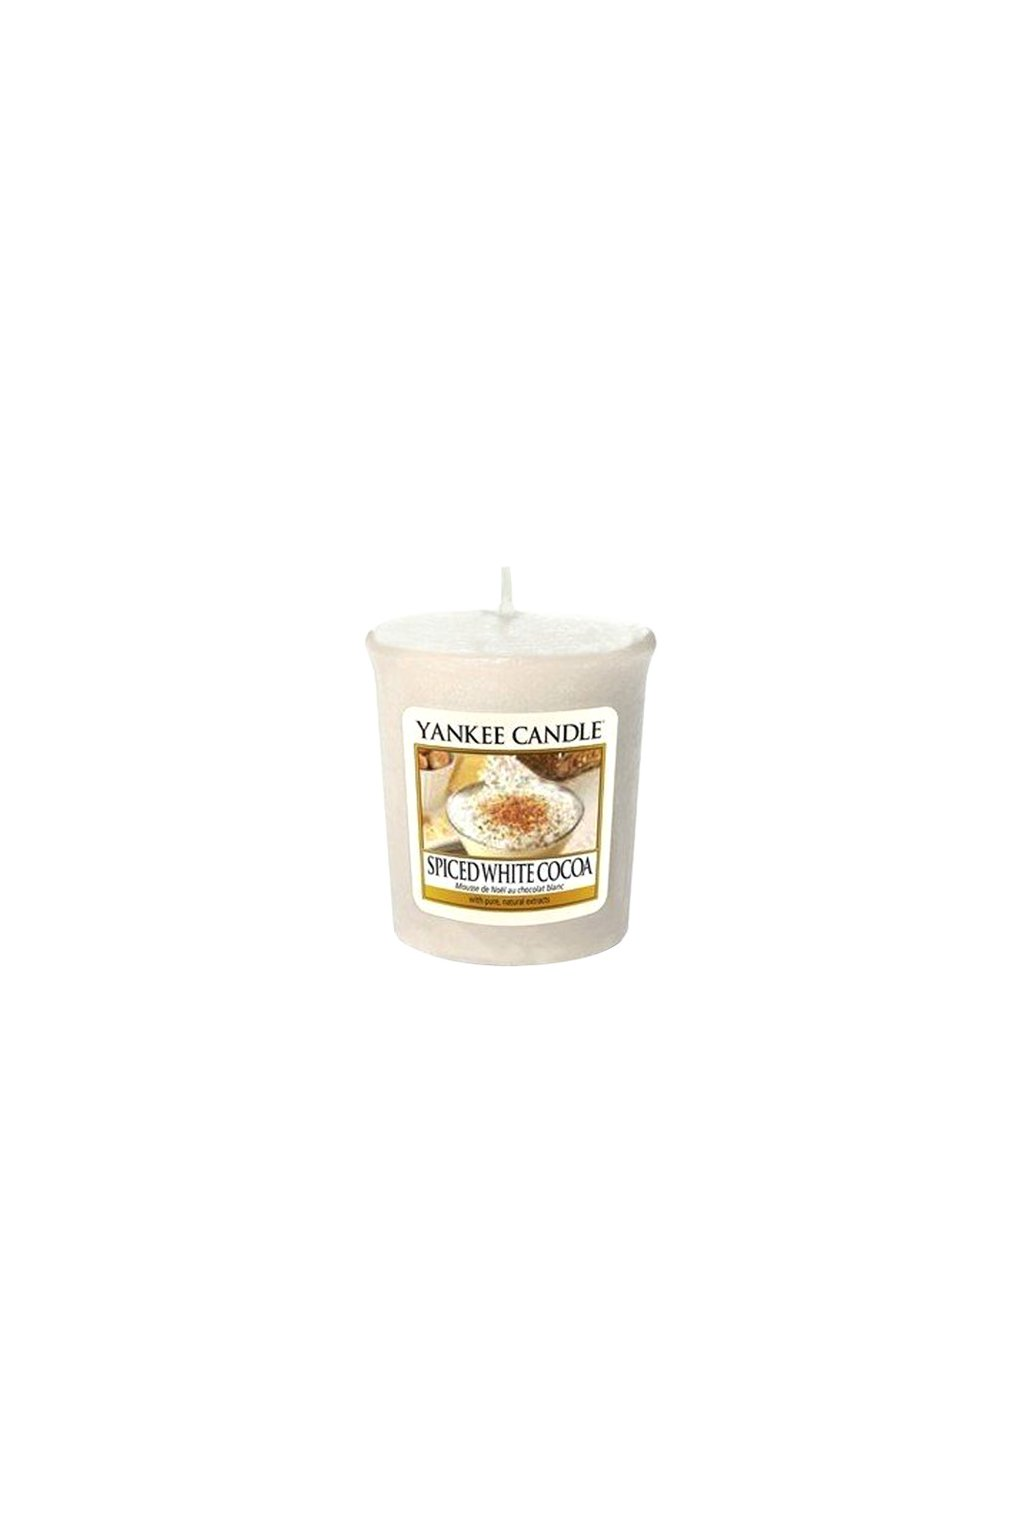 Yankee Candle Spiced White Cocoa 49g